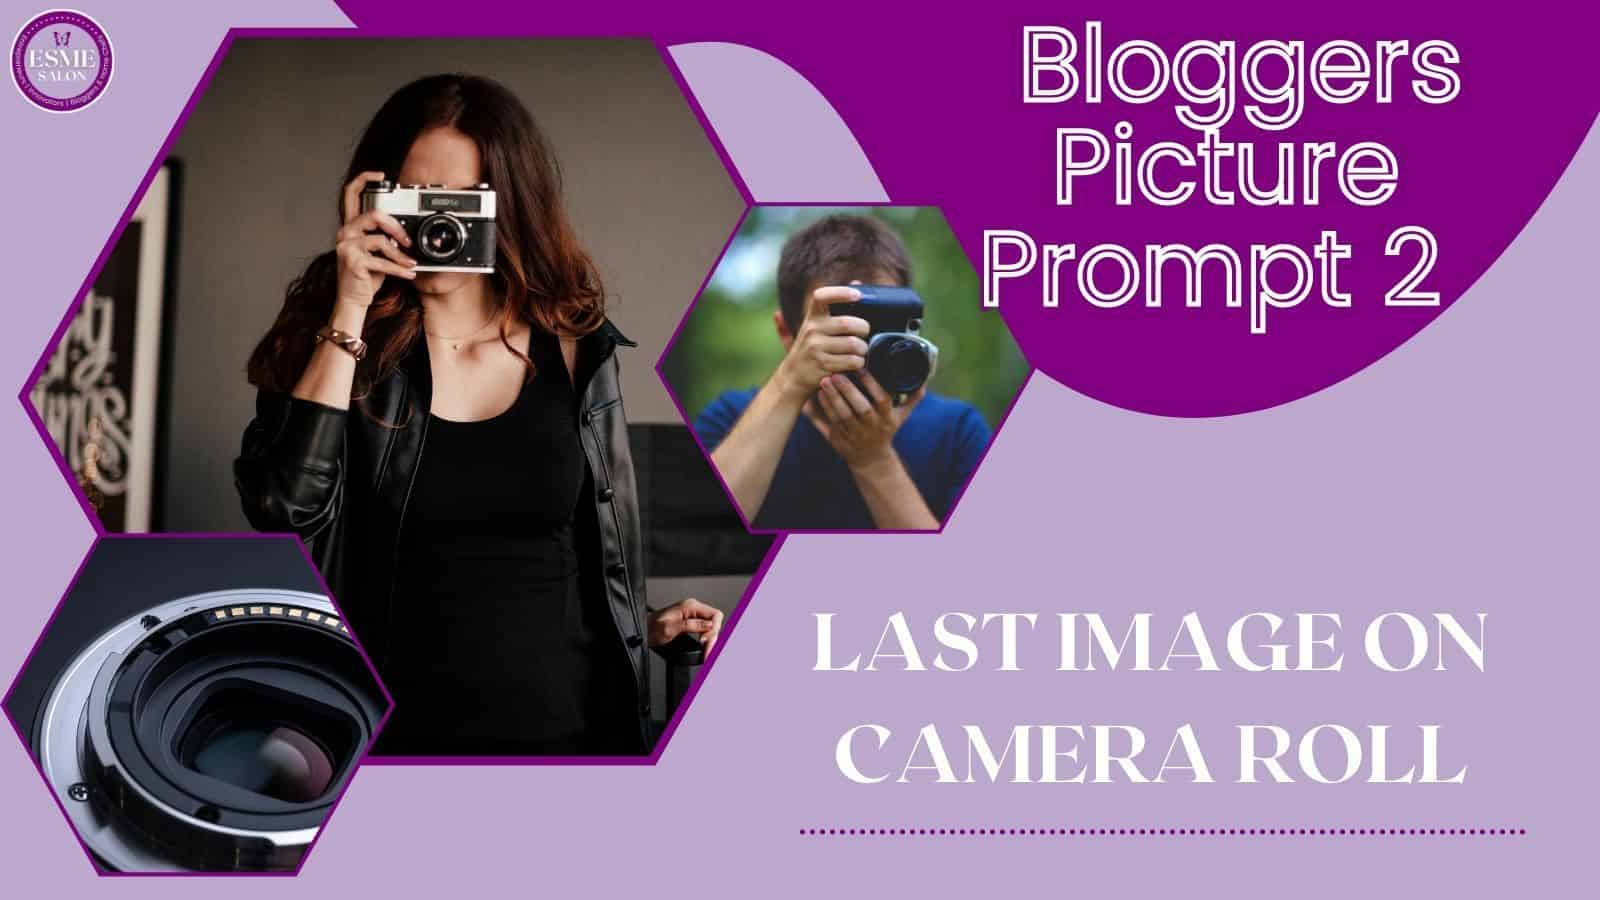 Lady wearing black with a camera taking pictures and a gentleman with blue shirt and blue camera